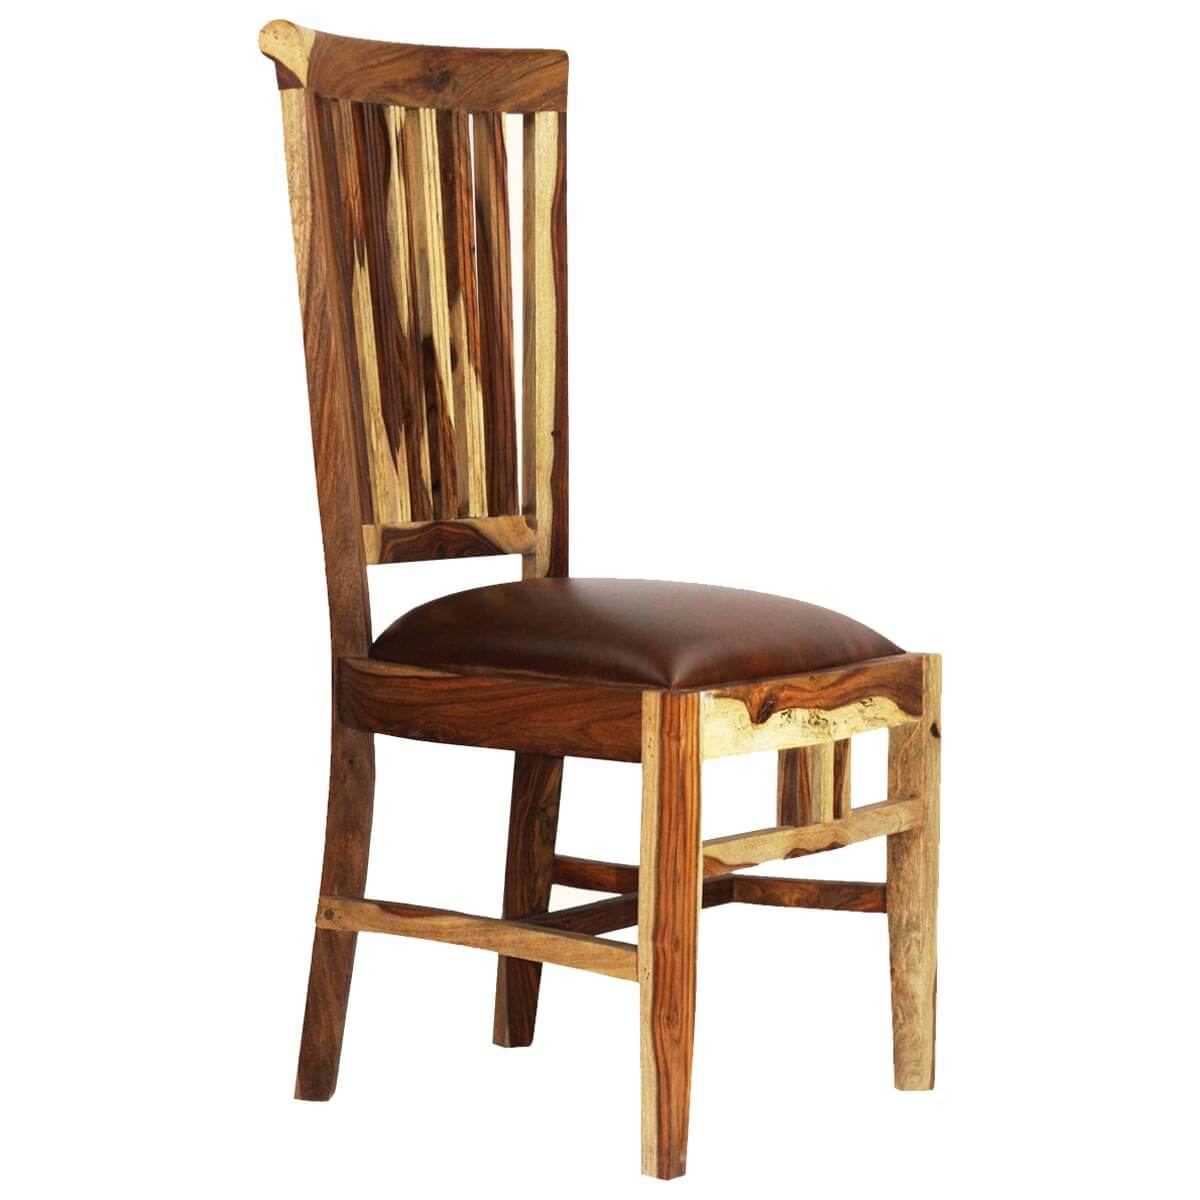 Wonderful image of Dallas Ranch Comb Back Solid Wood Upholstered Dining Chair with #B48317 color and 1200x1200 pixels